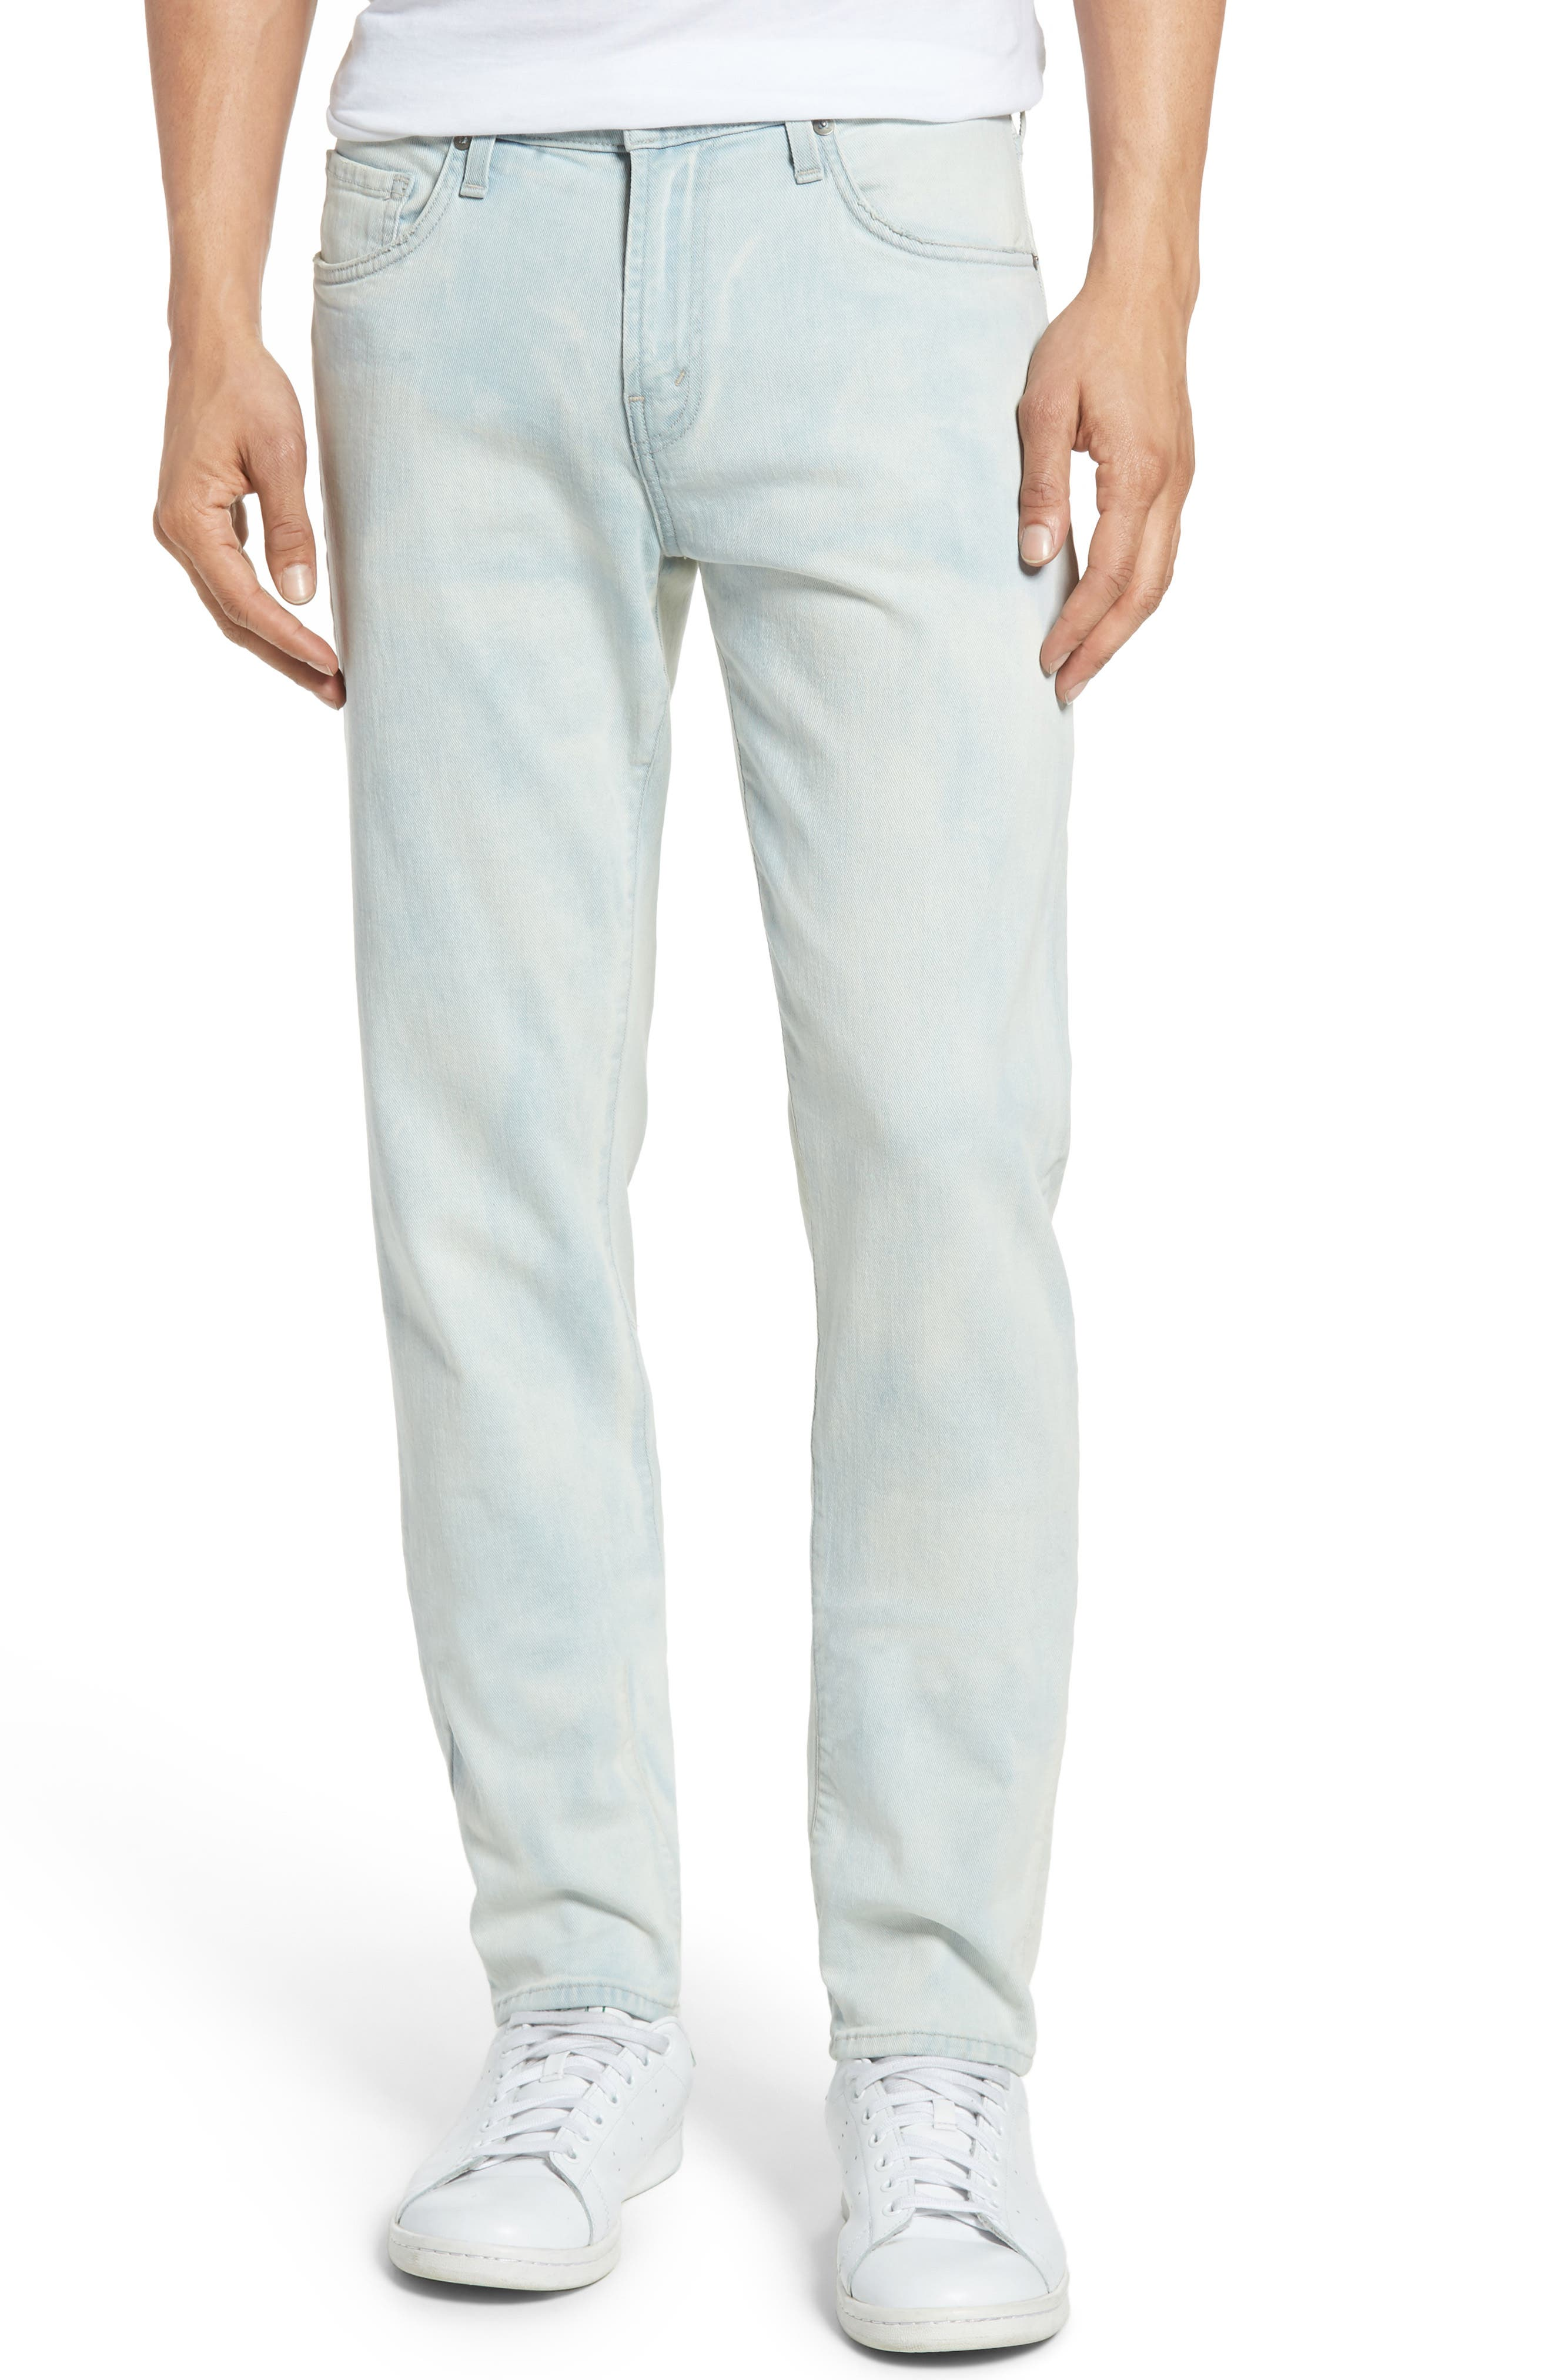 Tyler Slim Fit Jeans,                             Main thumbnail 1, color,                             Halogy